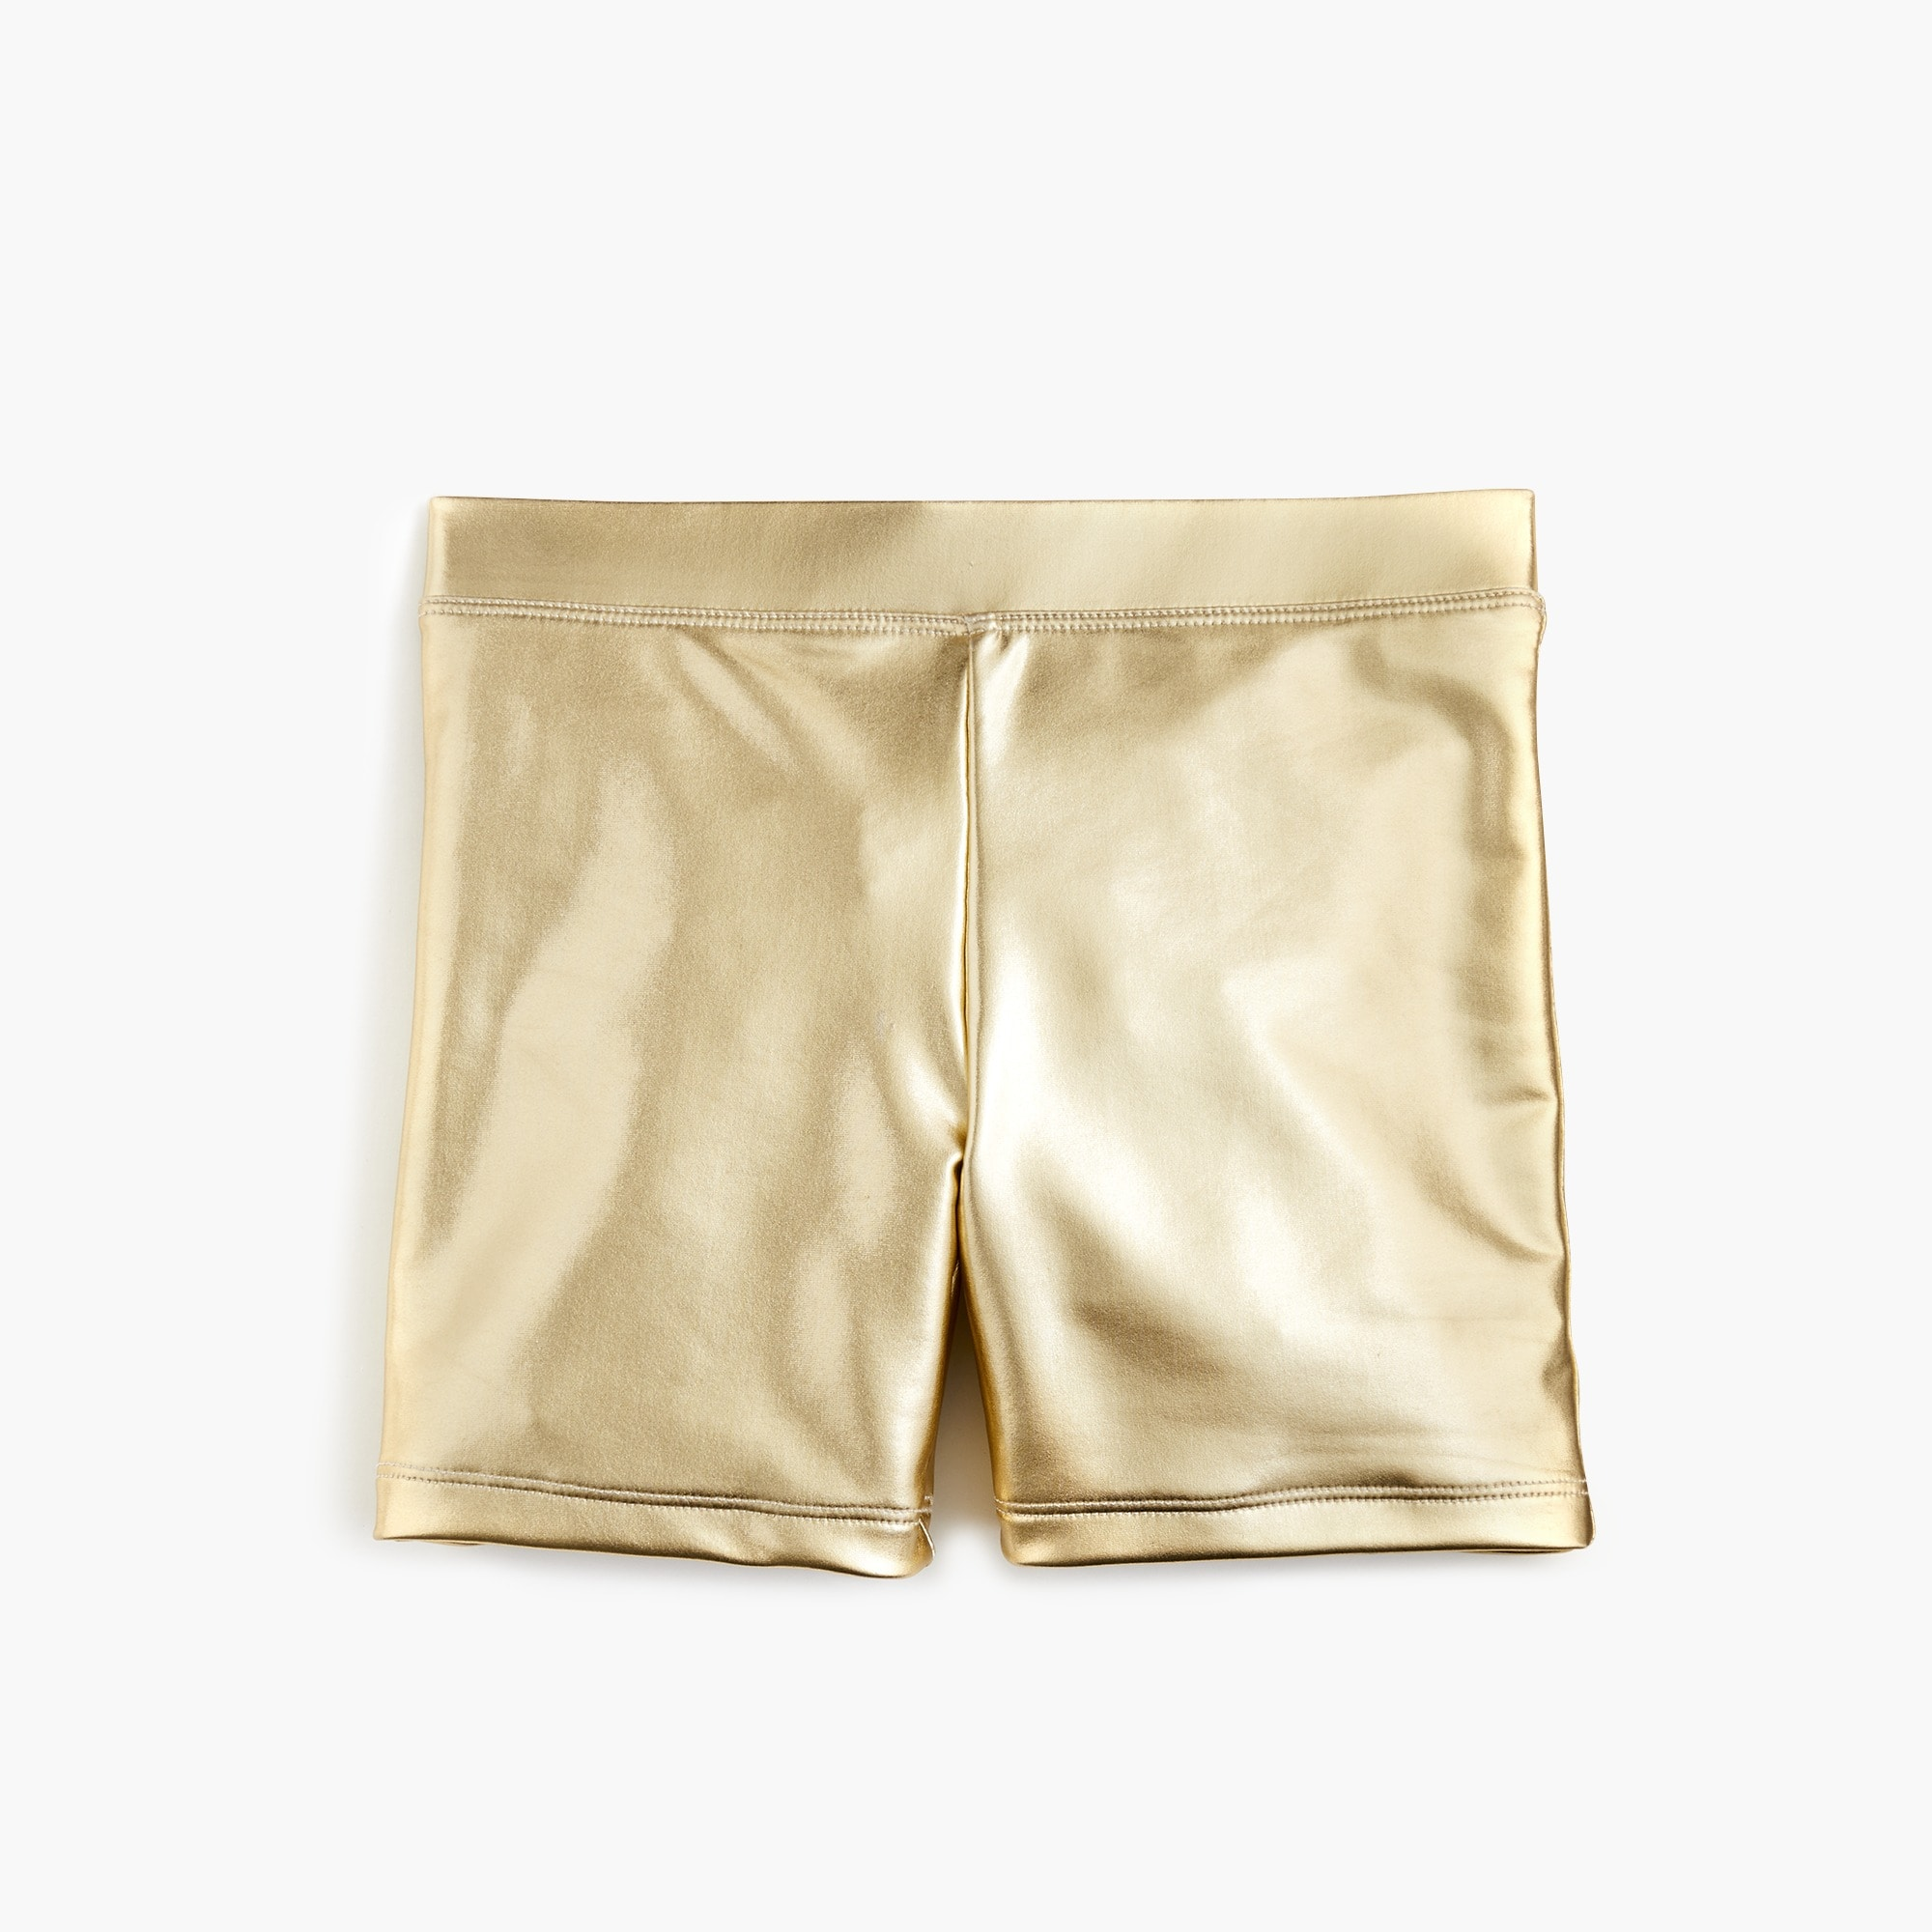 Image 1 for Girls' bike short in metallic